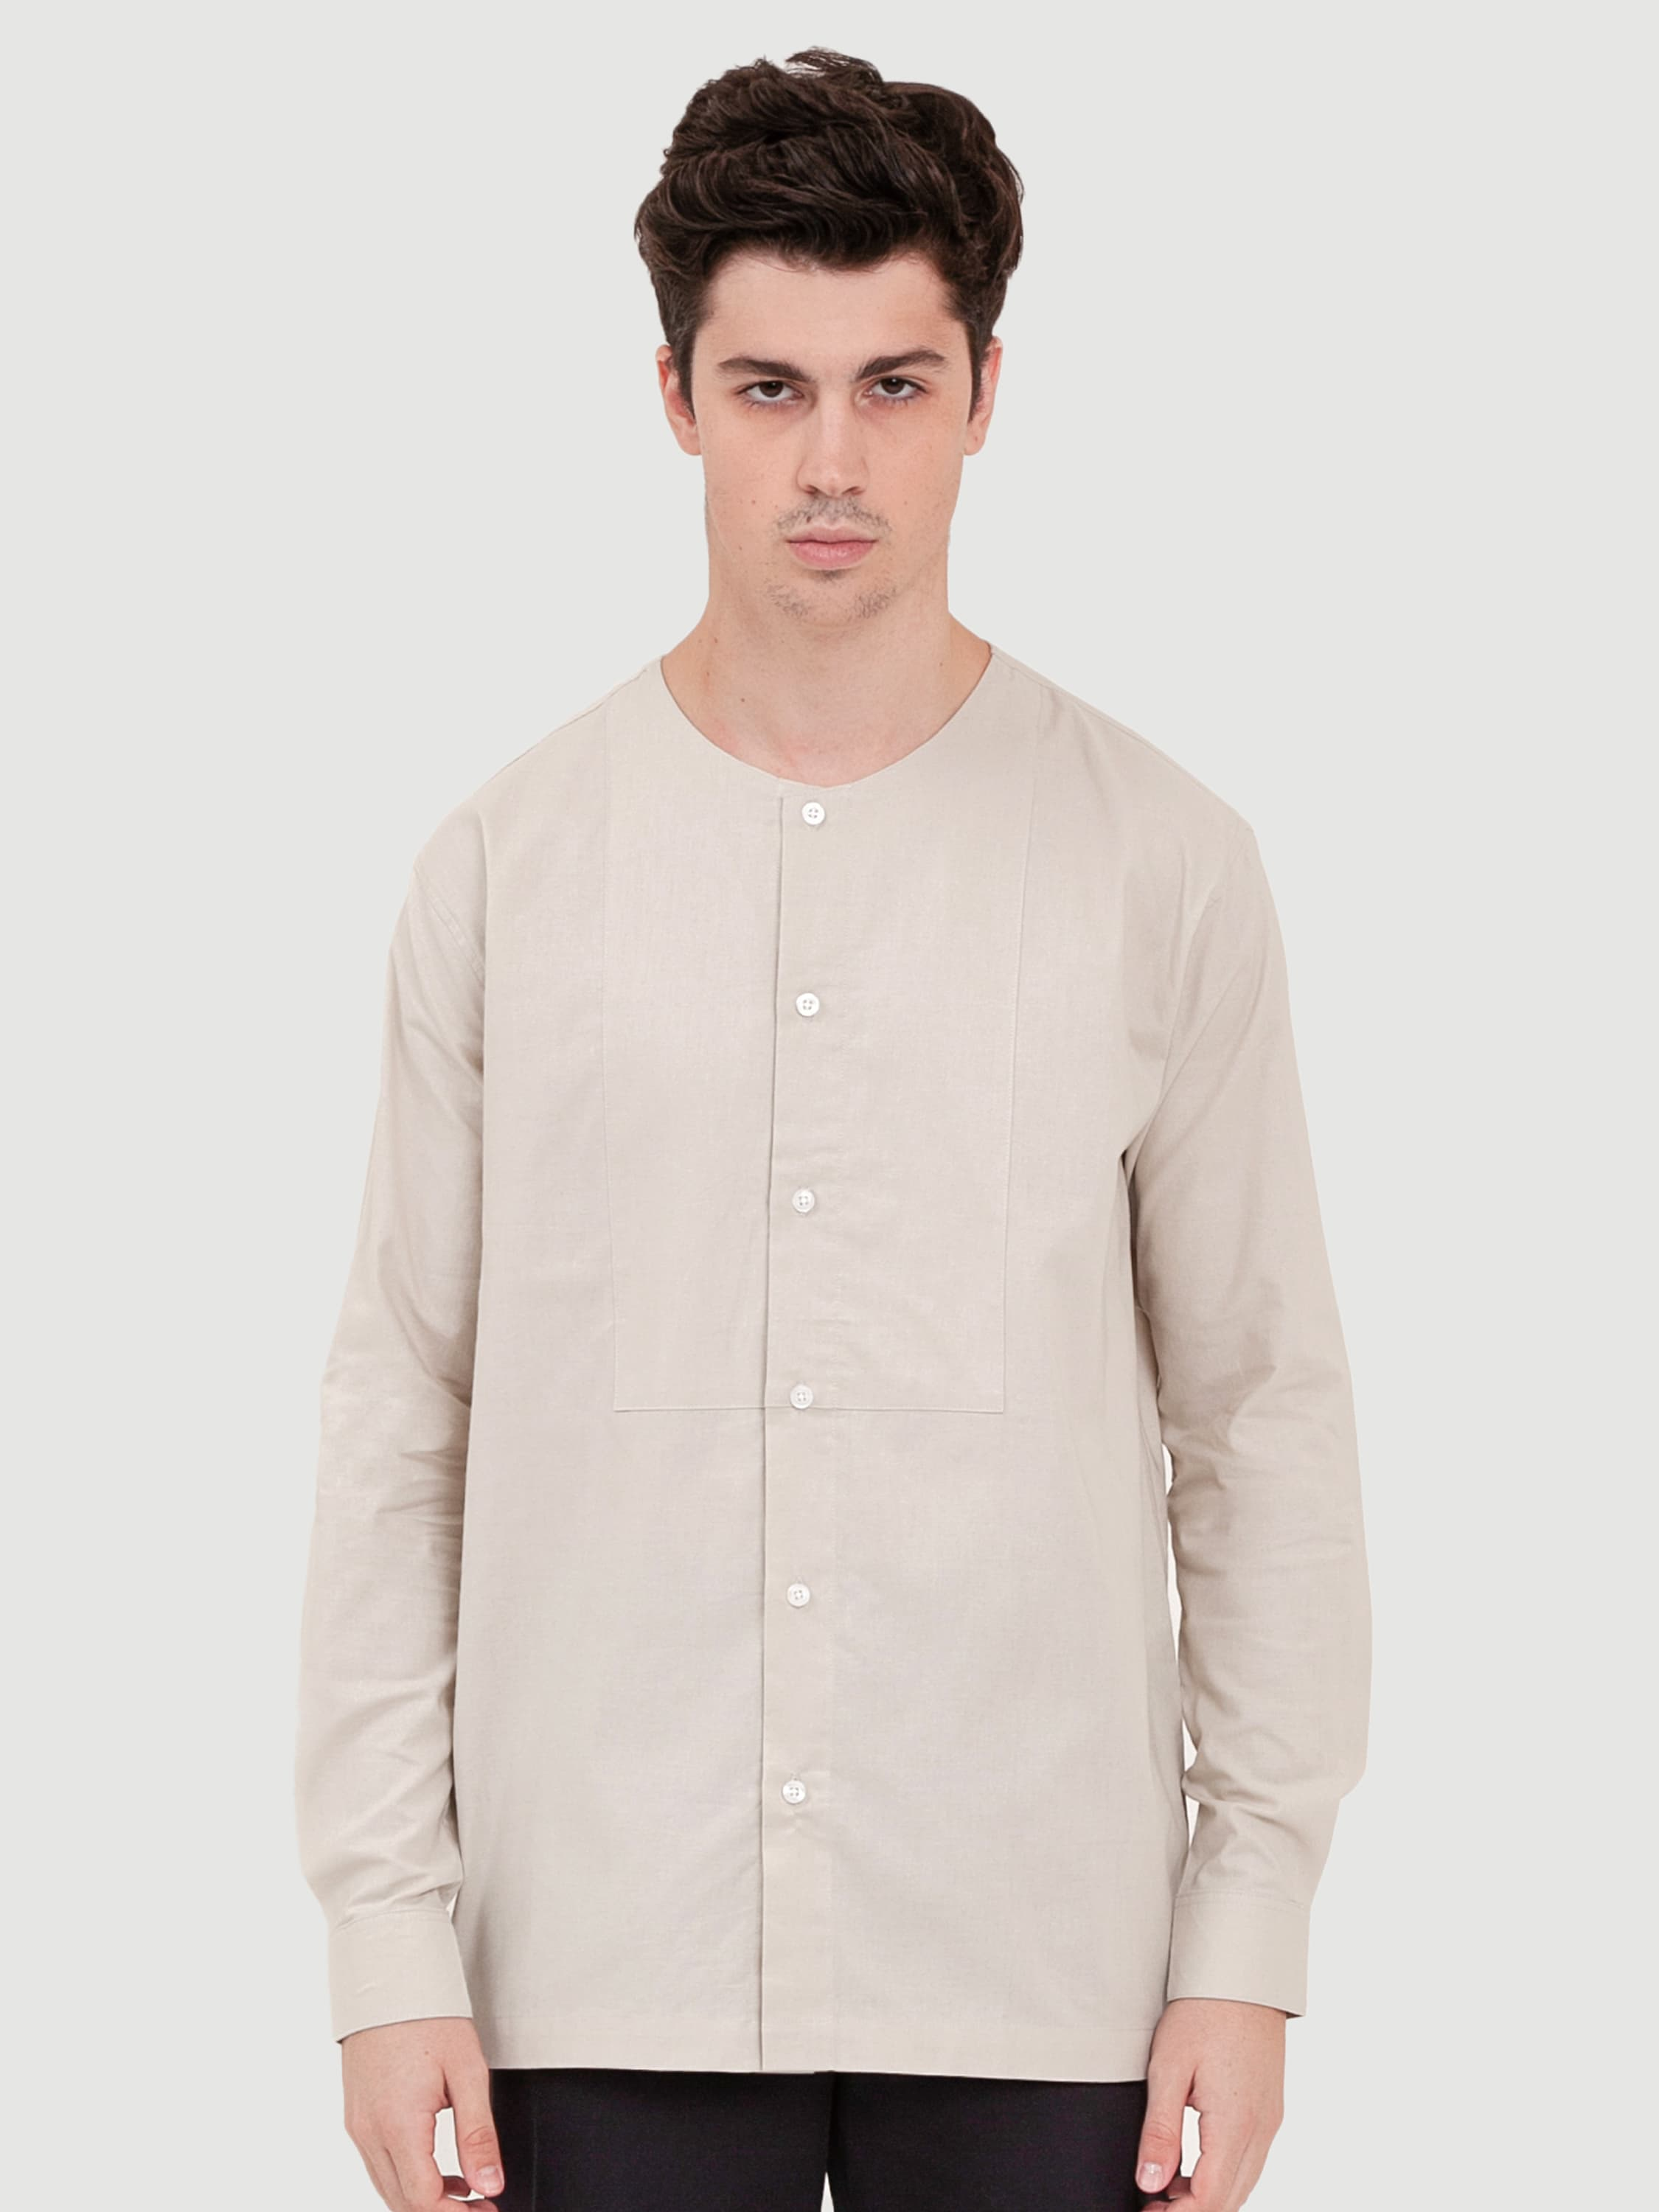 Common Off-White Cotton Shirt